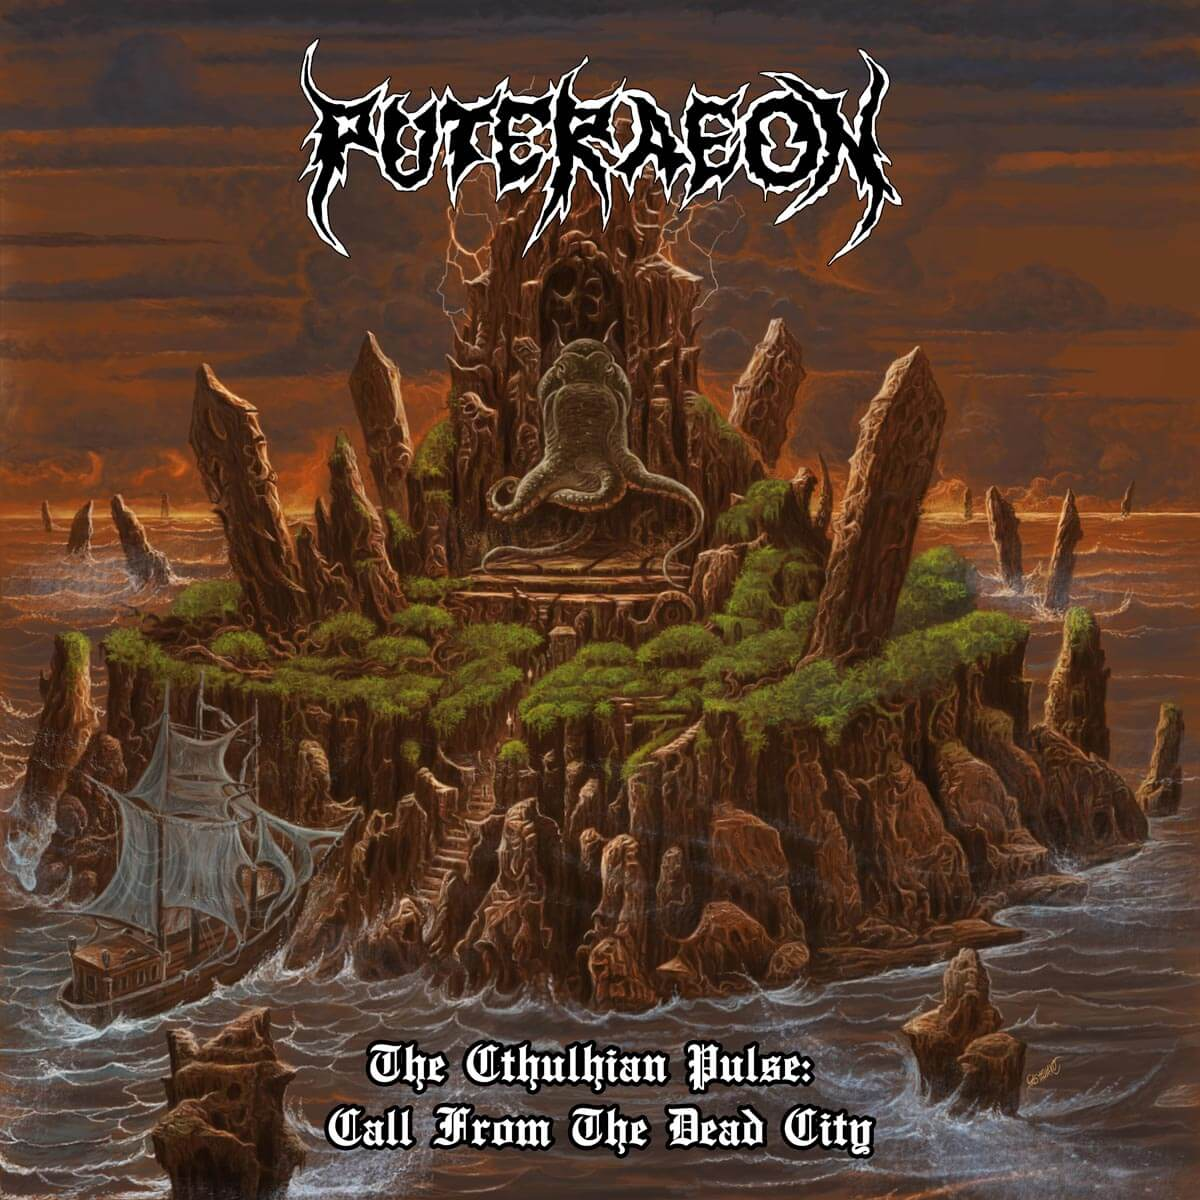 Puteraeon – The Cthulhian Pulse: Call from the dead city